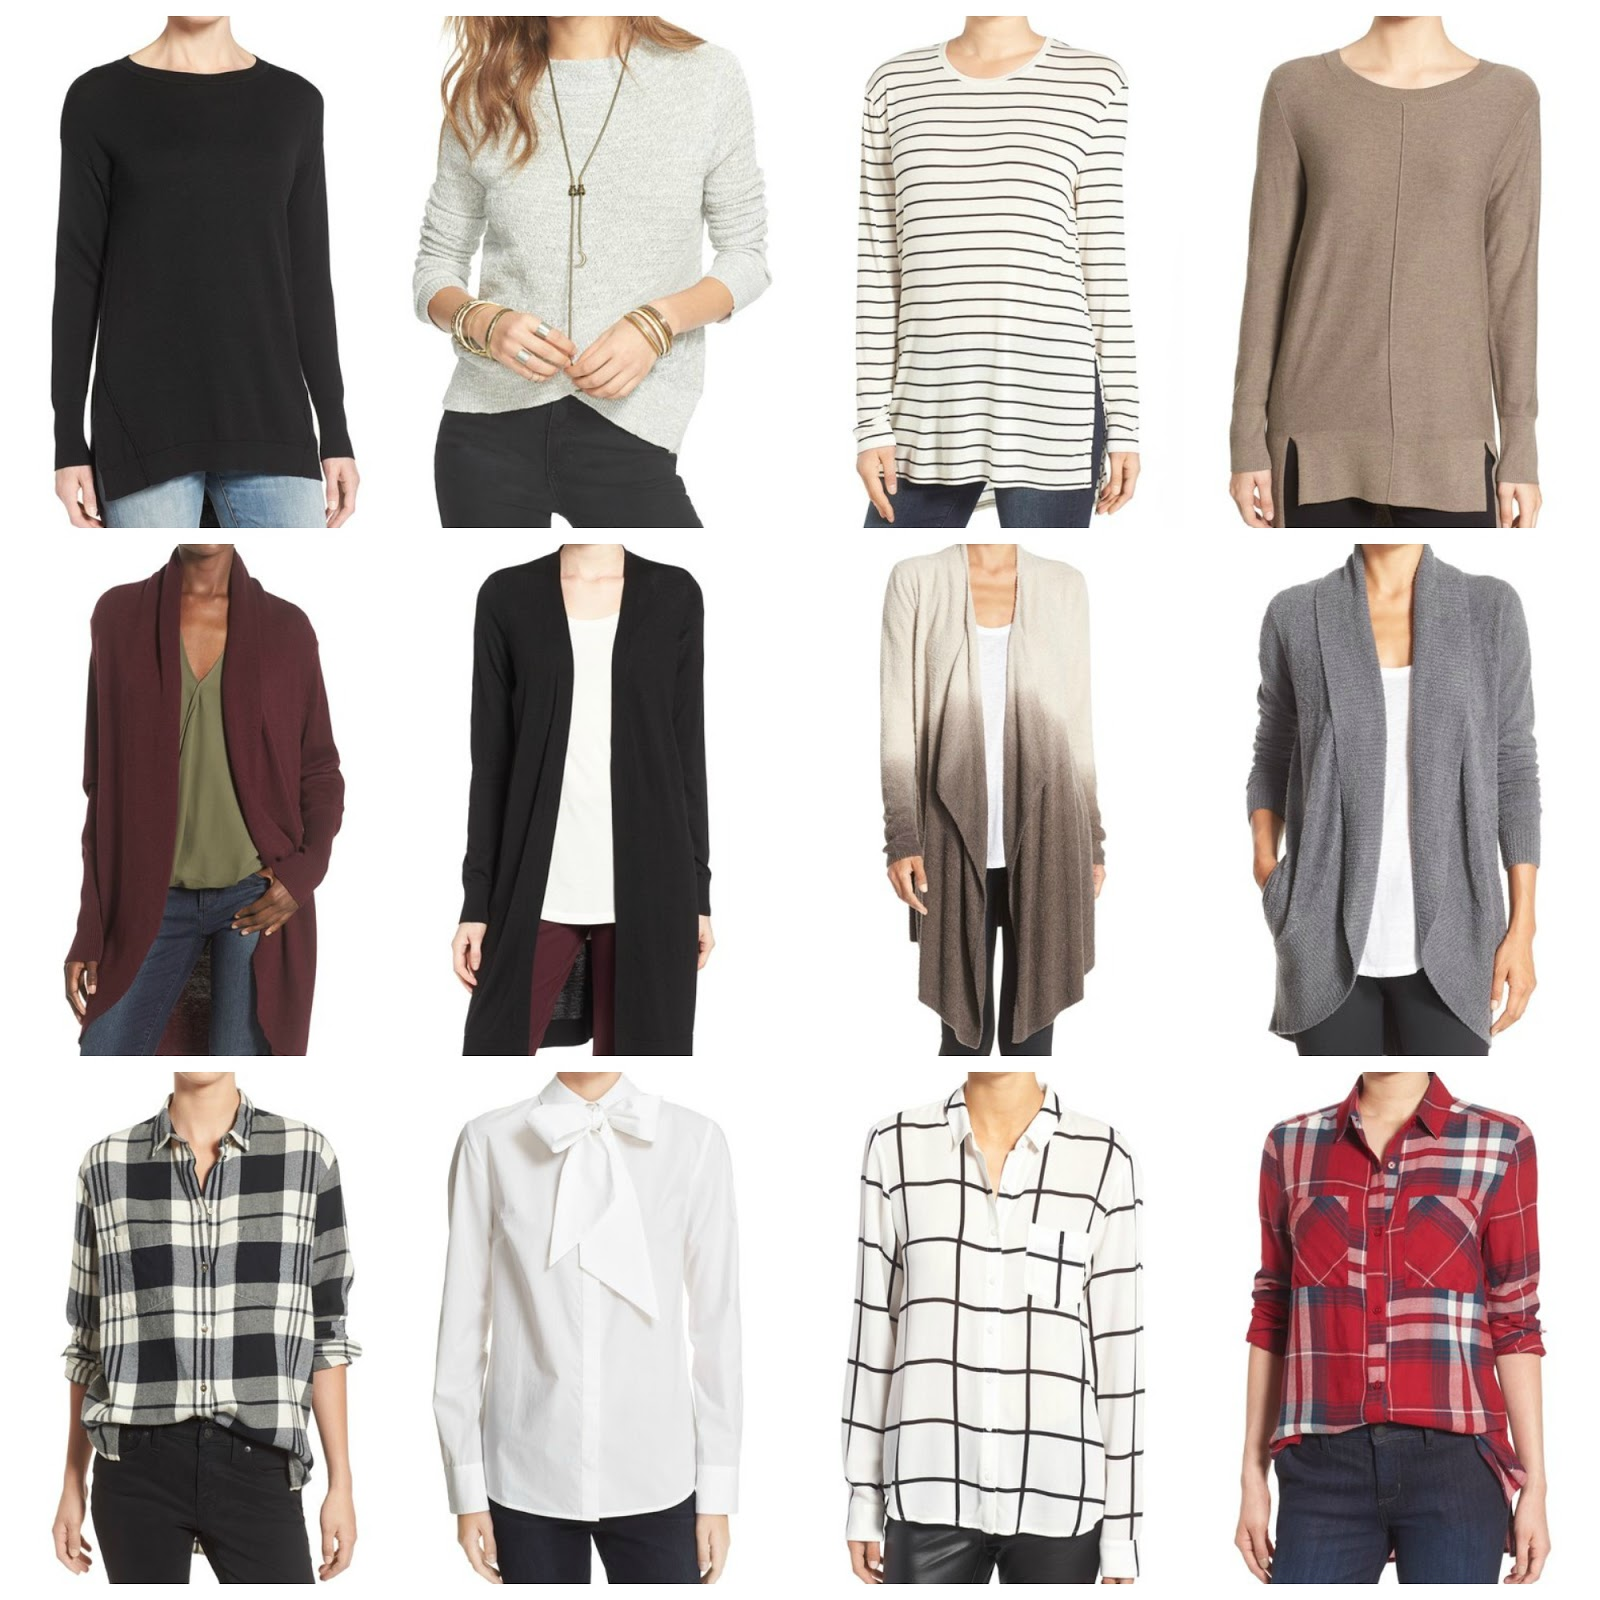 Anniversary Sale Sweaters and Tops - Must Haves Even Though Its